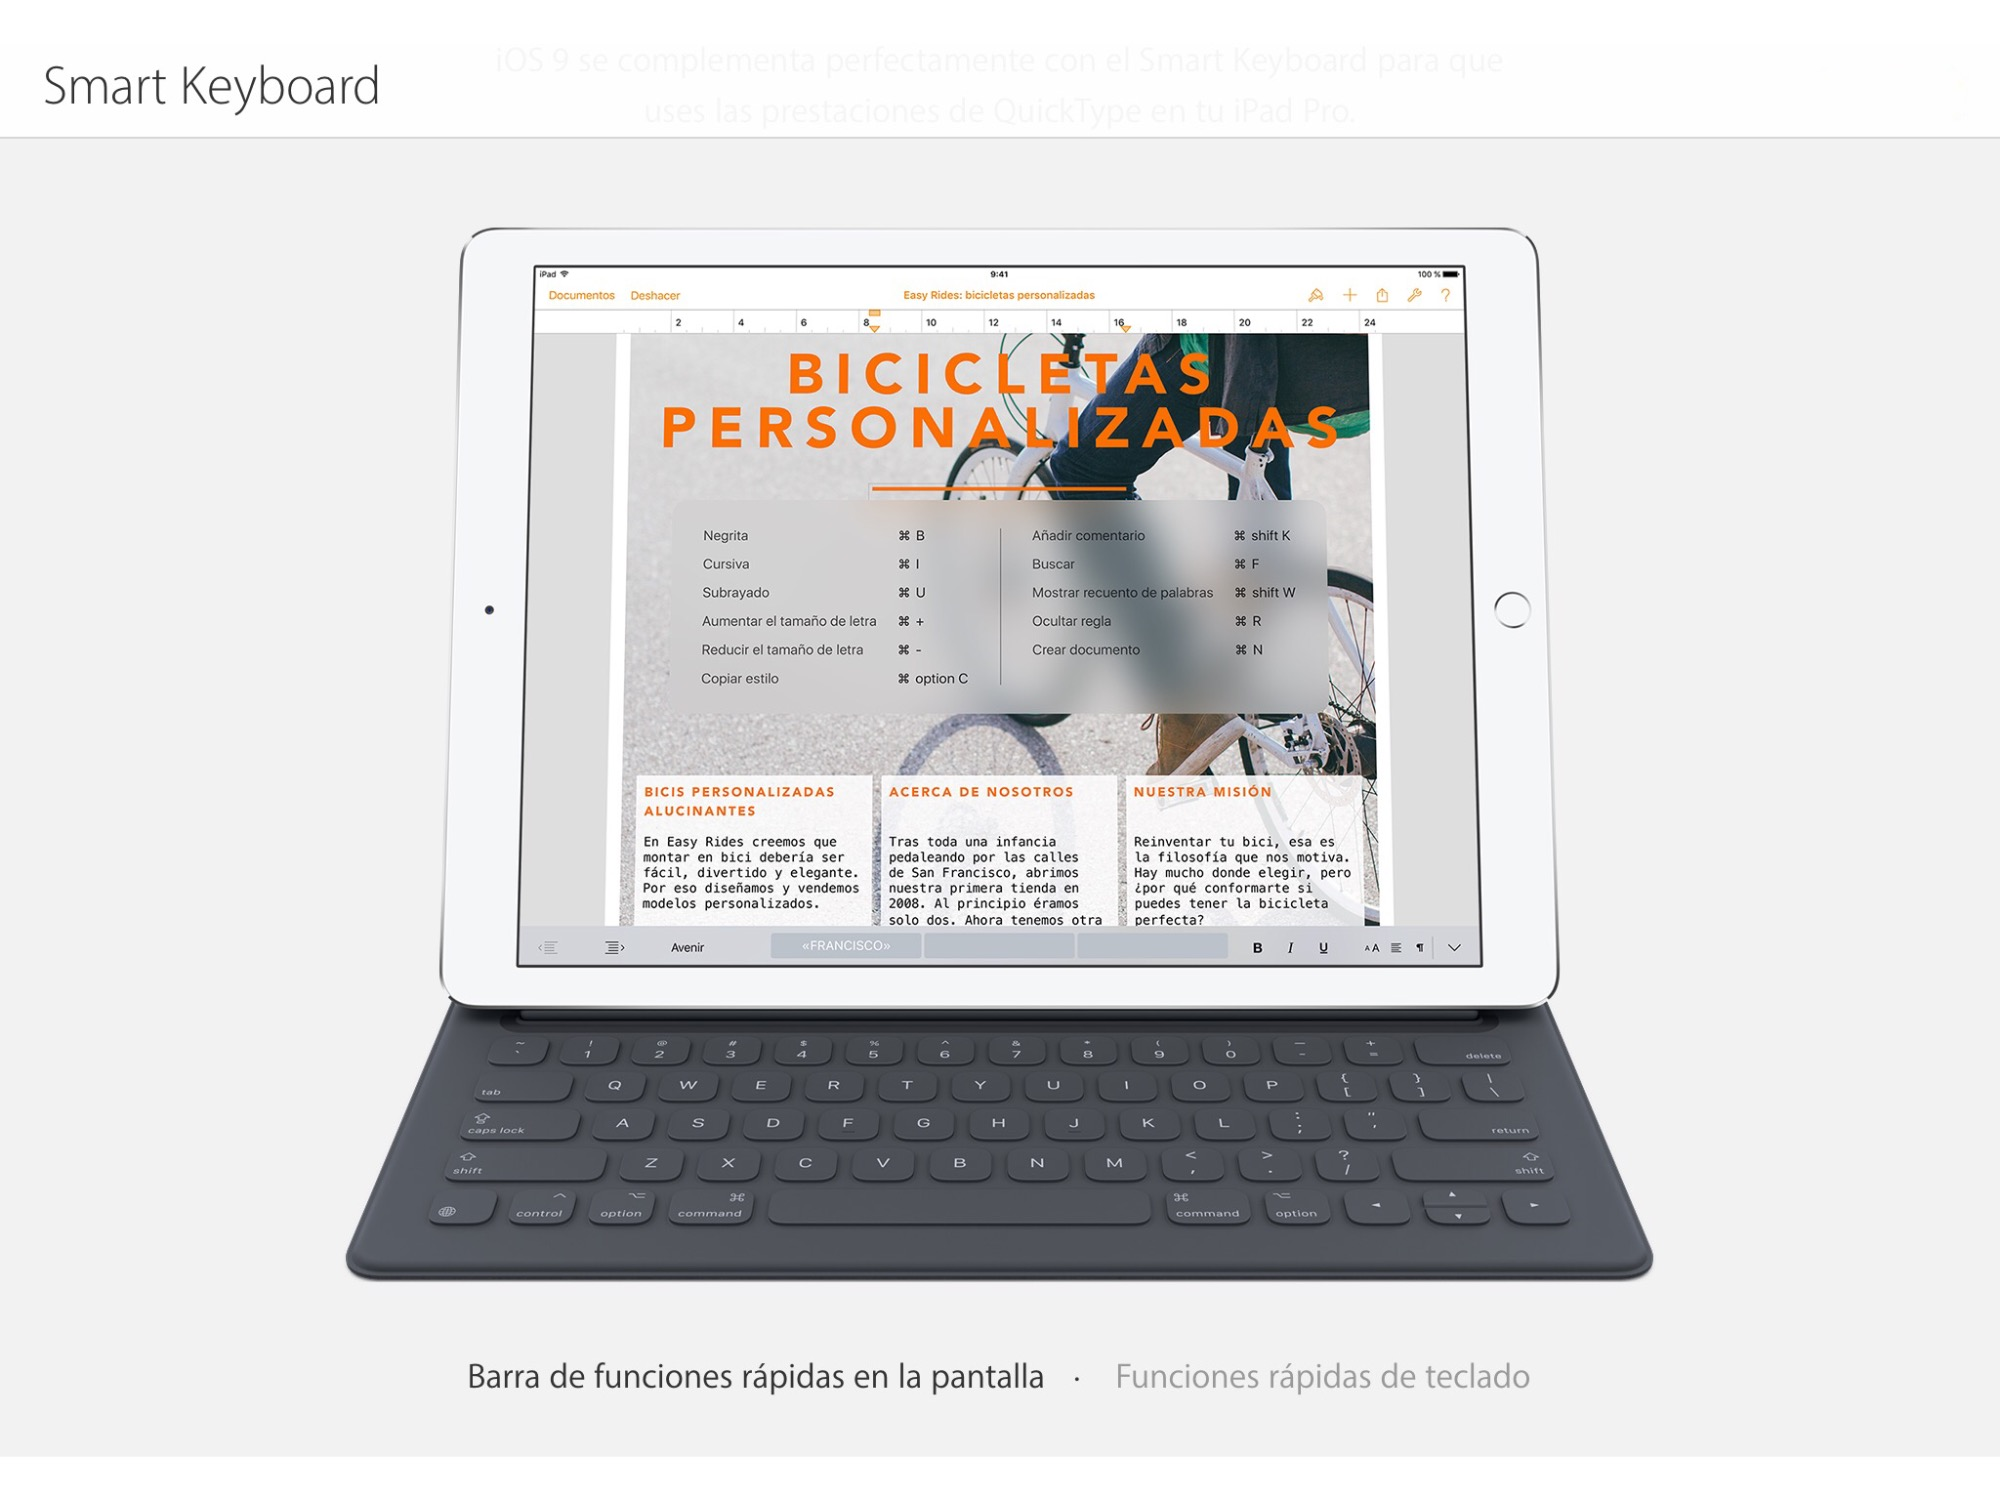 http://hablandodemanzanas.com/sites/default/files/Imagen-iPad-Pro-Smart-Keyboard-Apple.jpg